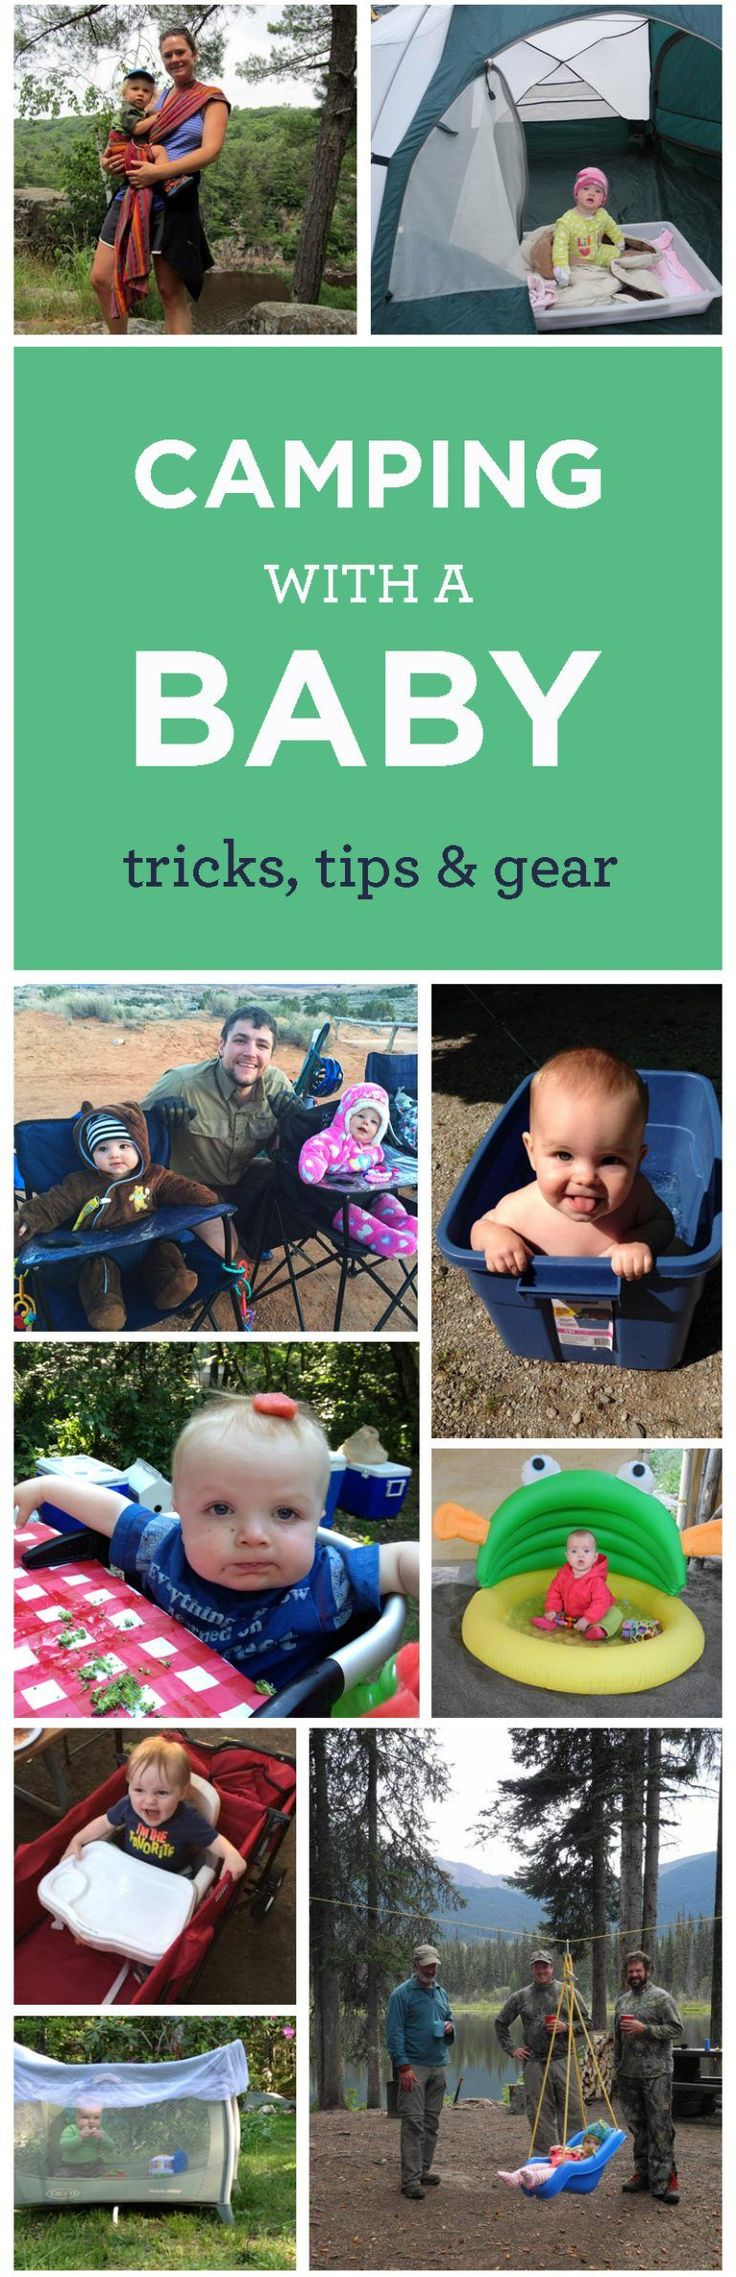 We cover general packing lists and camping tips when bringing a baby or toddler with you when enjoying the great outdoors.